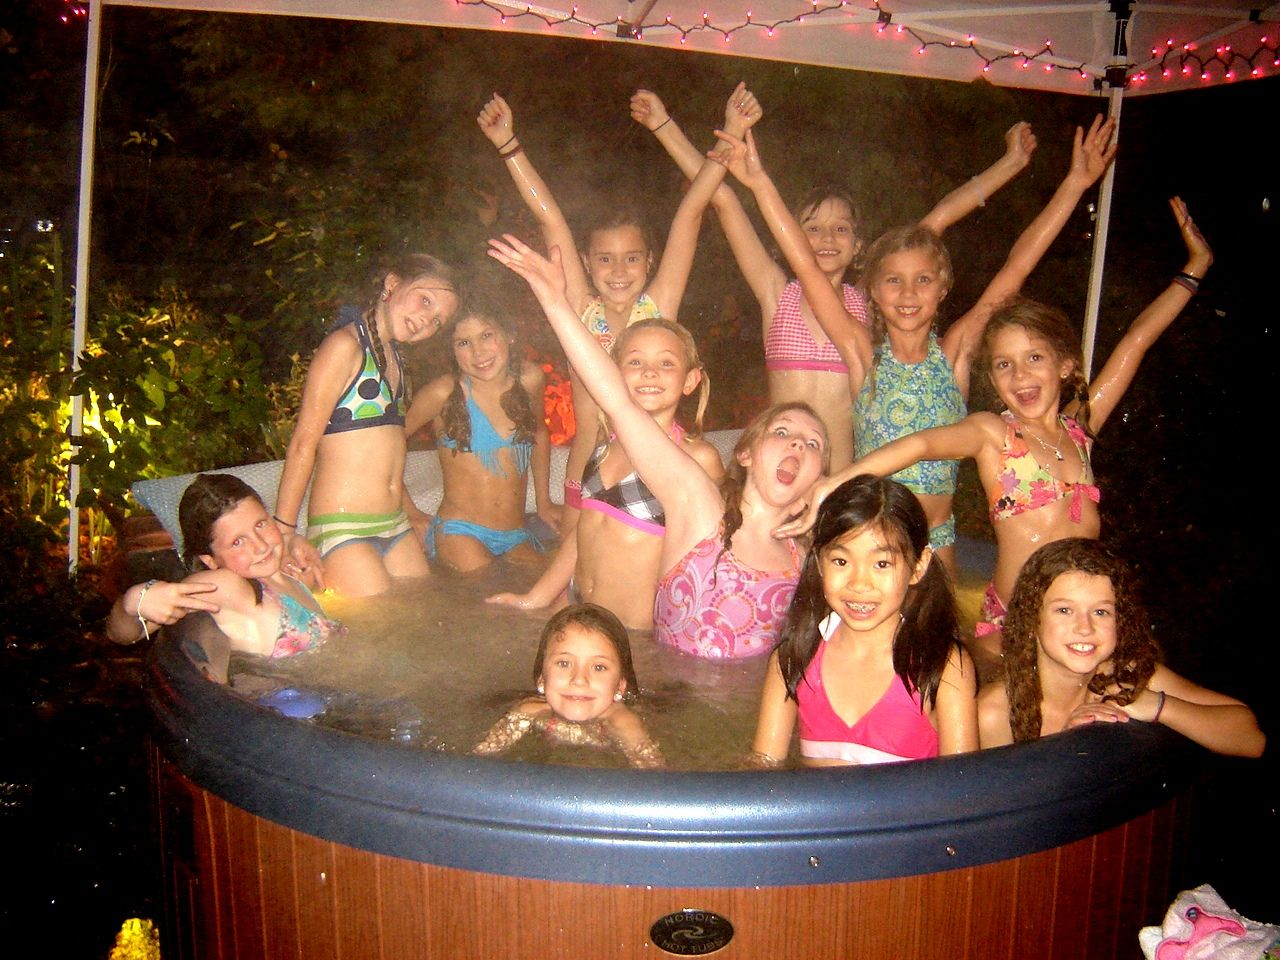 Gotta get wet in the hot tub when you have a birthday party that has ...